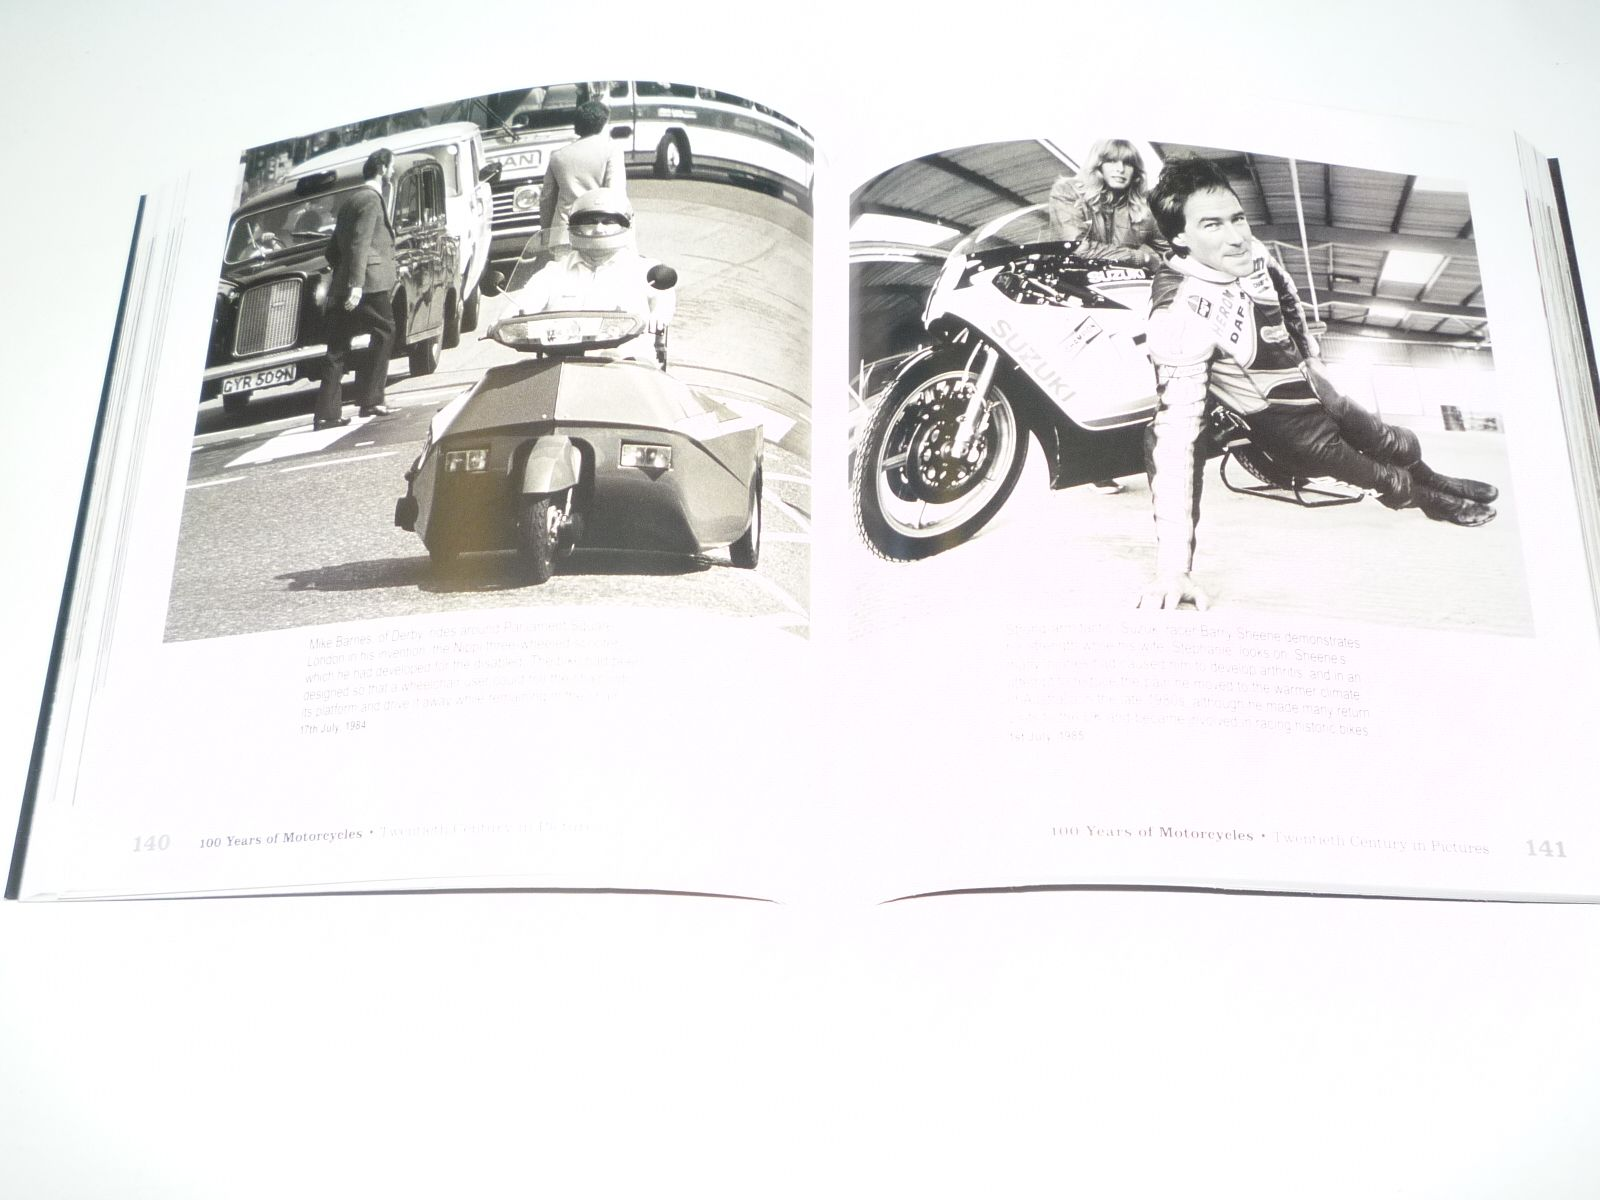 ... 100 Years of Motorcycles . Twentieth Century In Pictures (Pemberthy  2010) ...